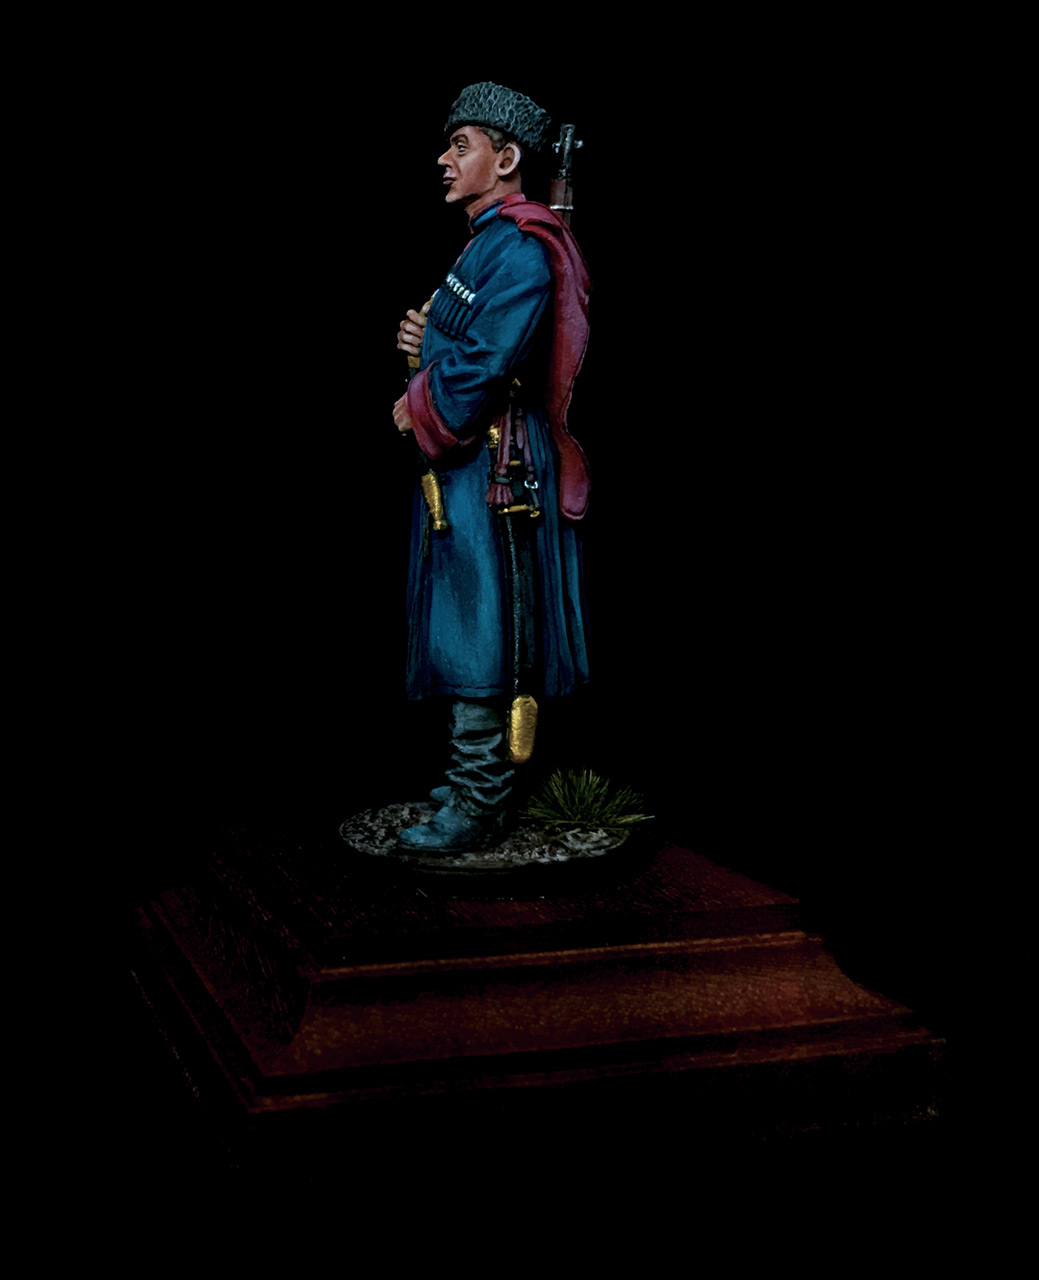 Figures: Kuban Cossack, photo #1